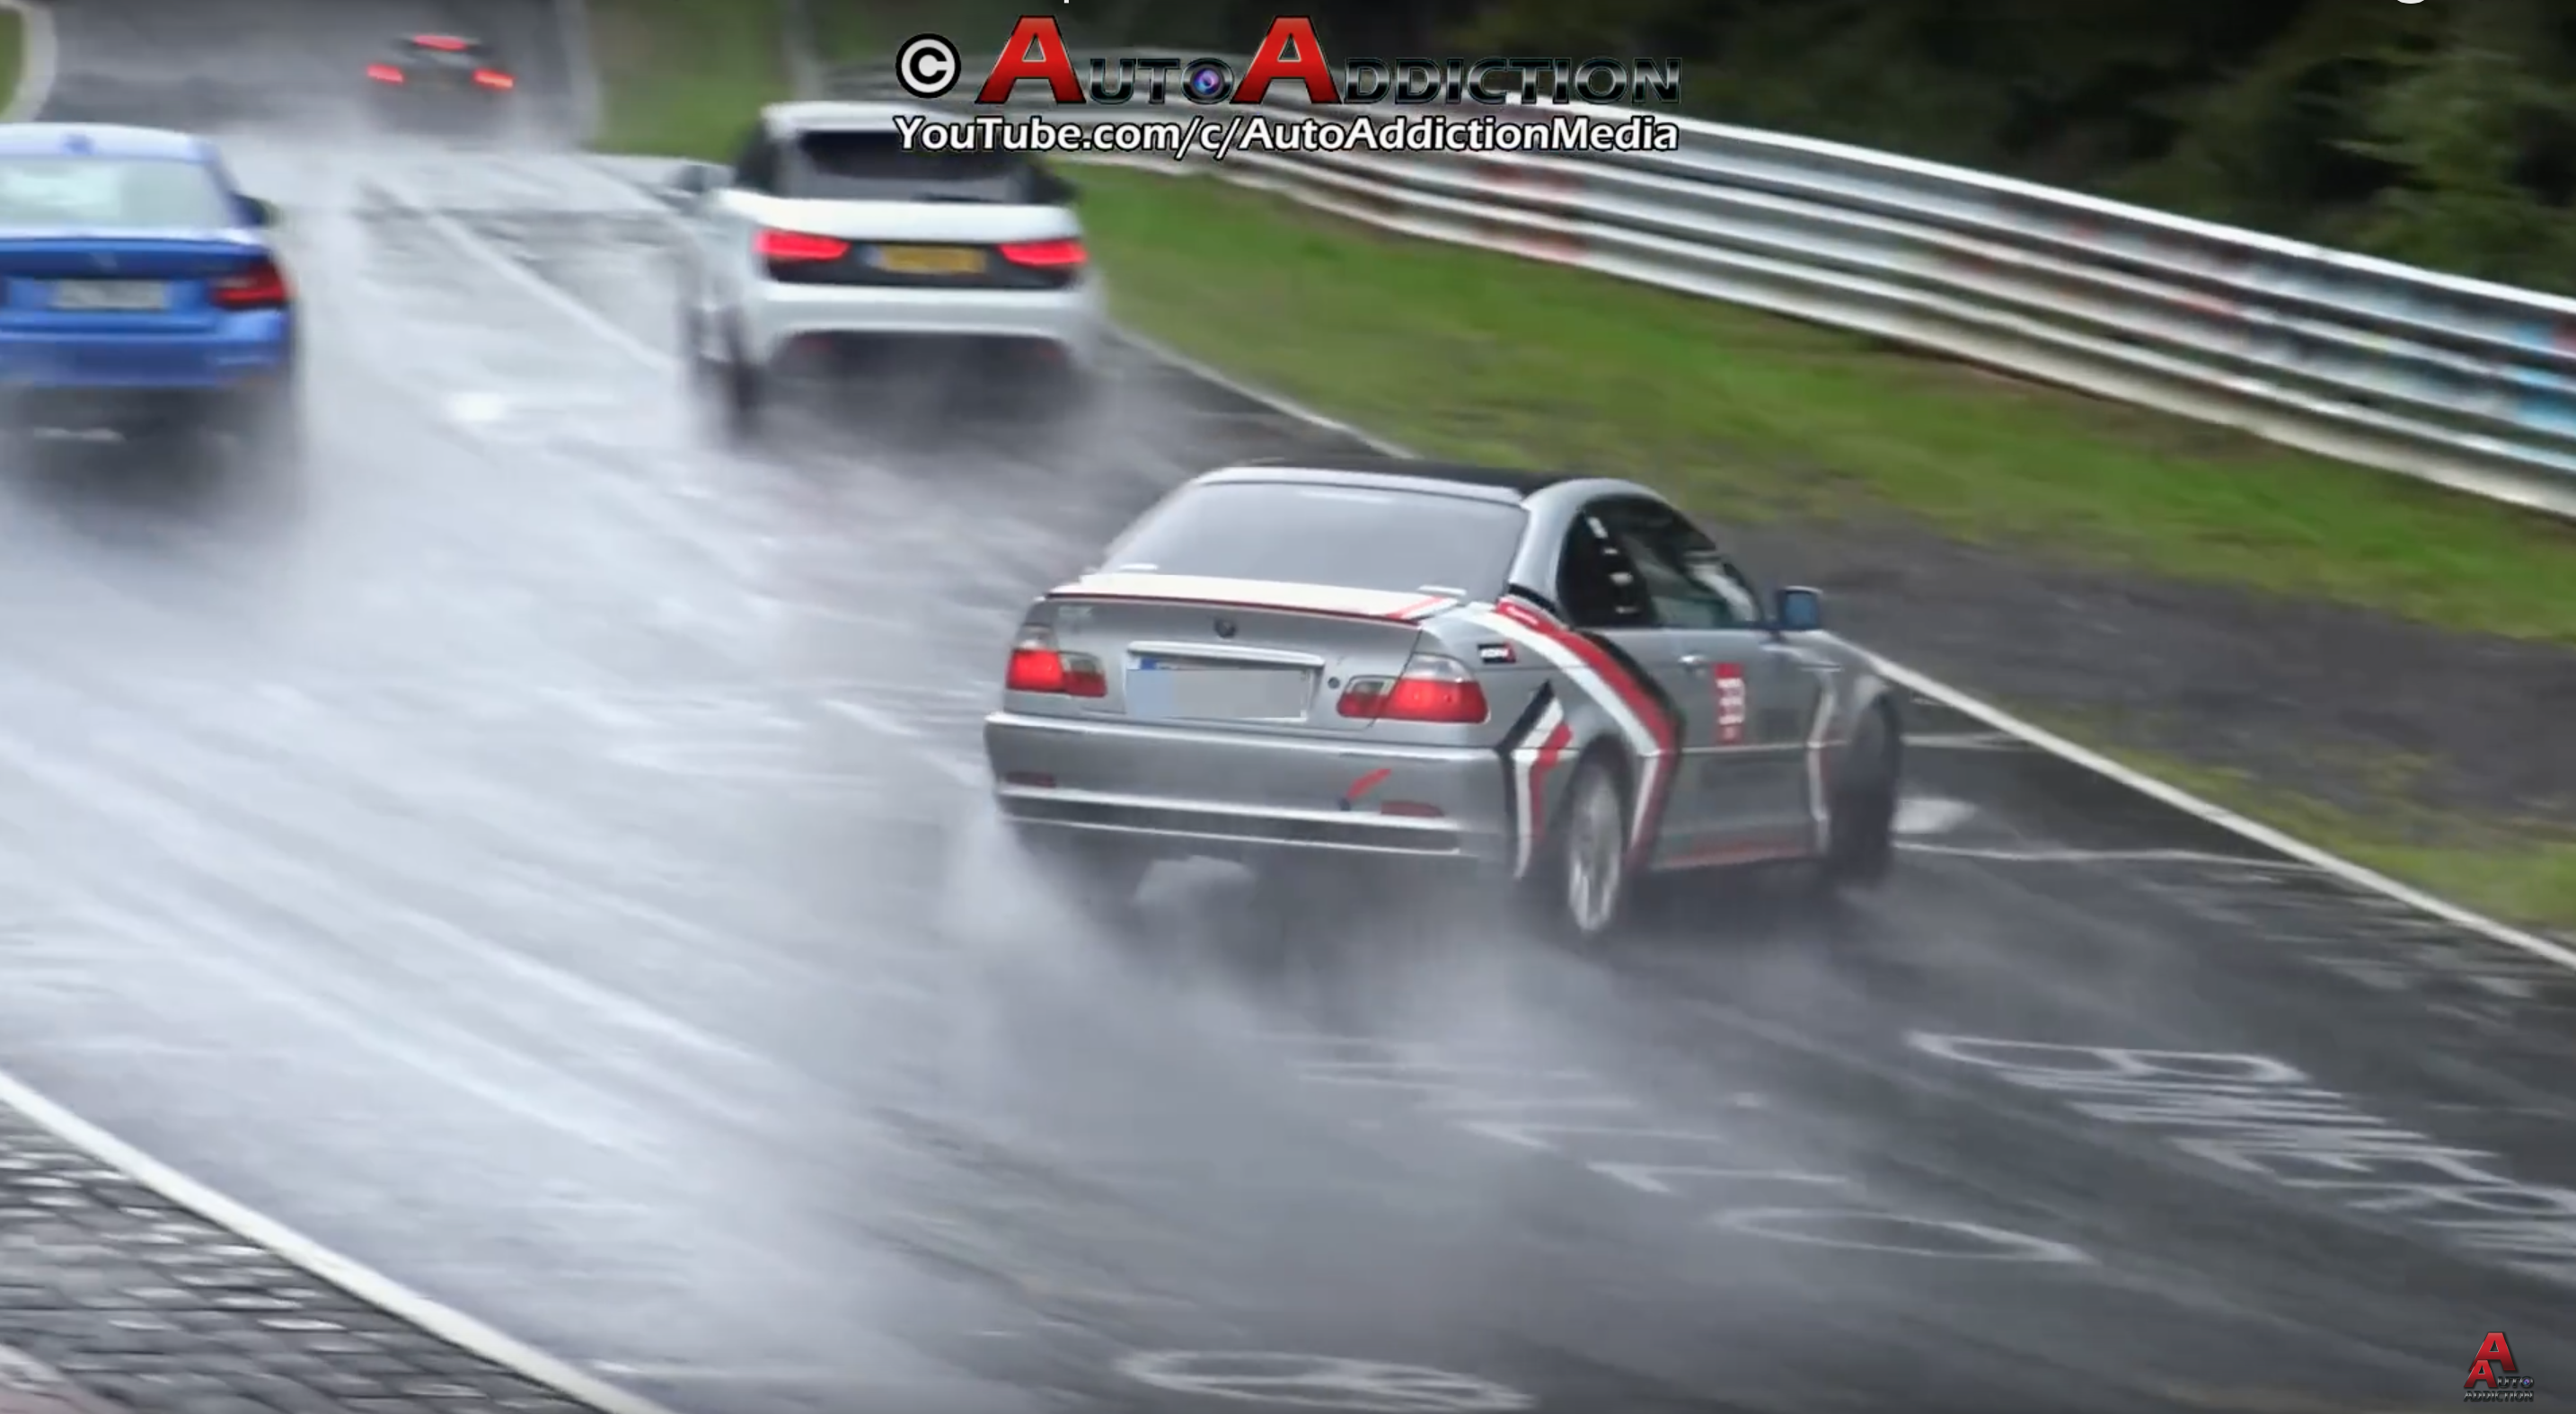 Nurburgring crash